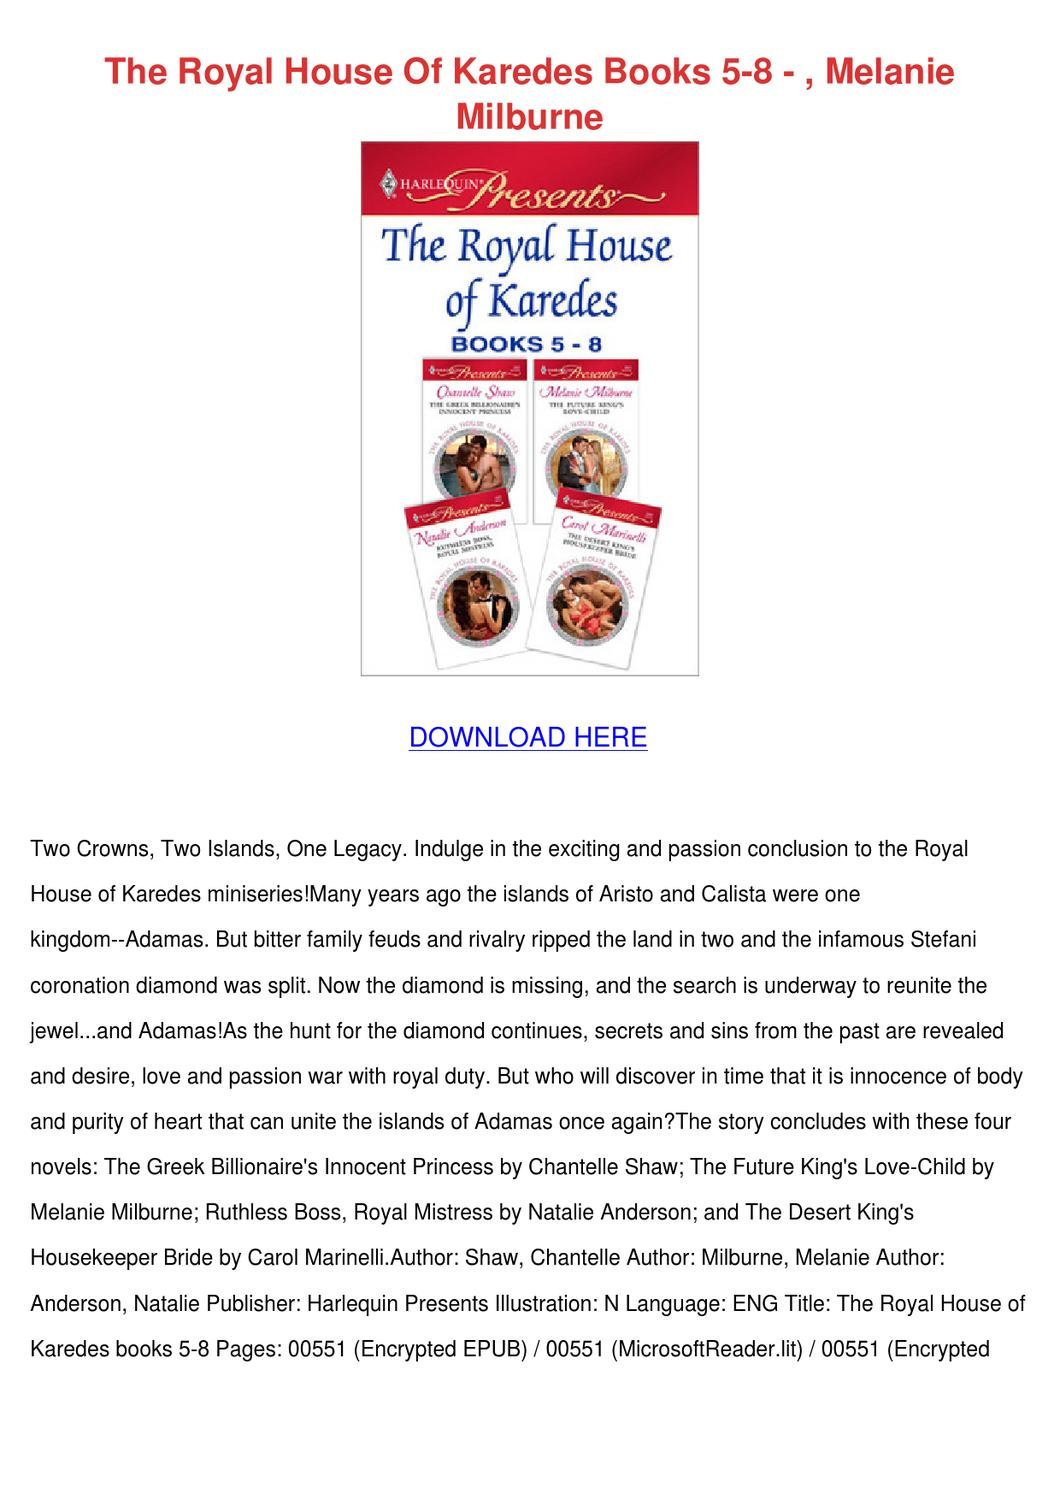 The royal house of karedes pdf viewer